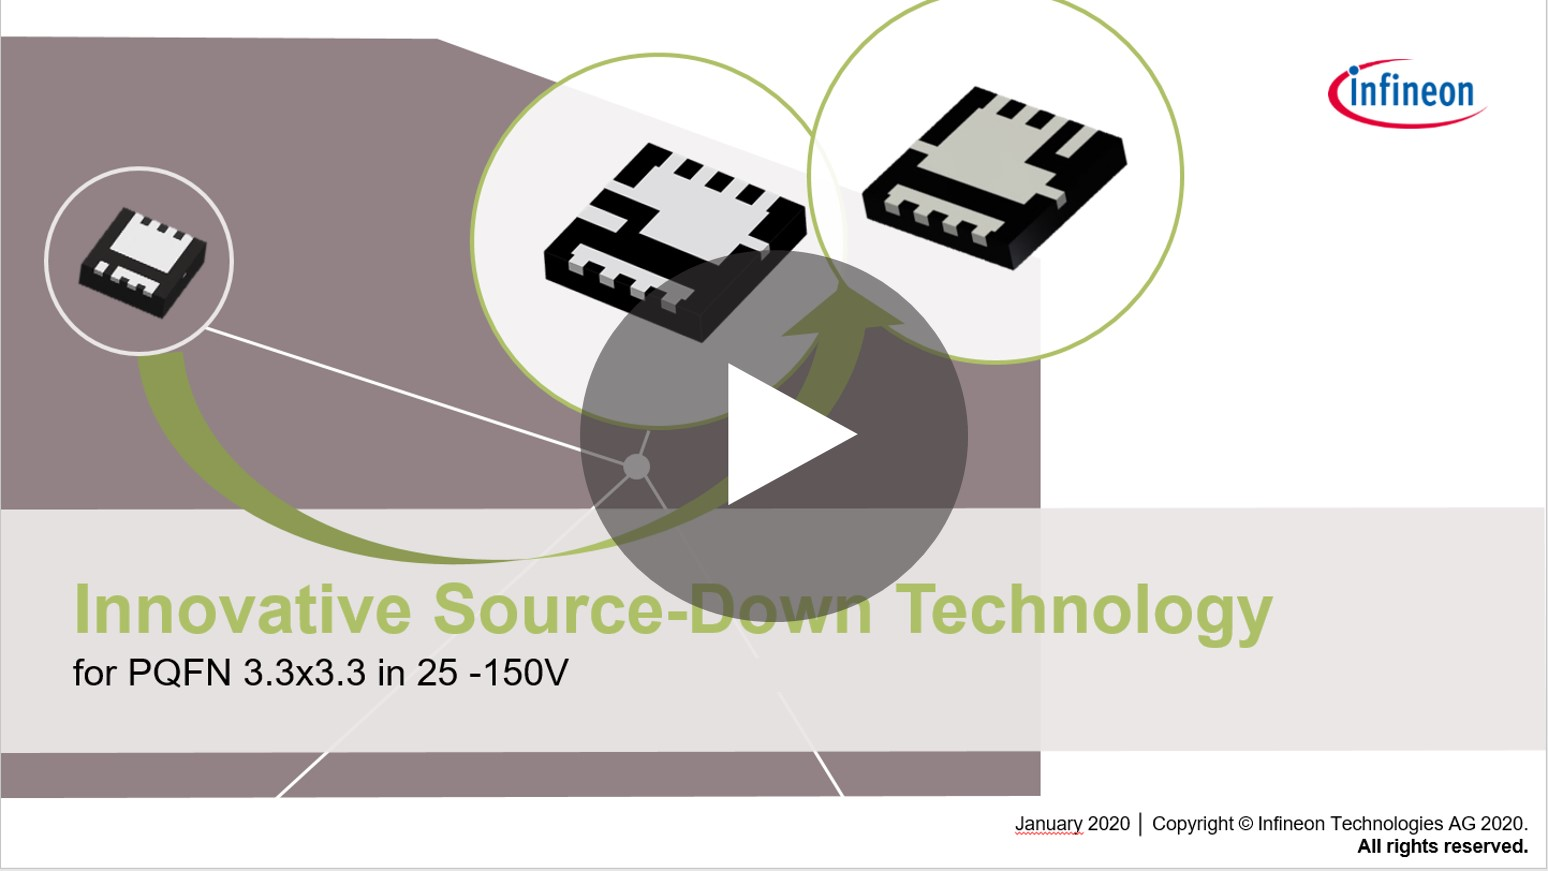 Infineon e-learning Source Down technology photo